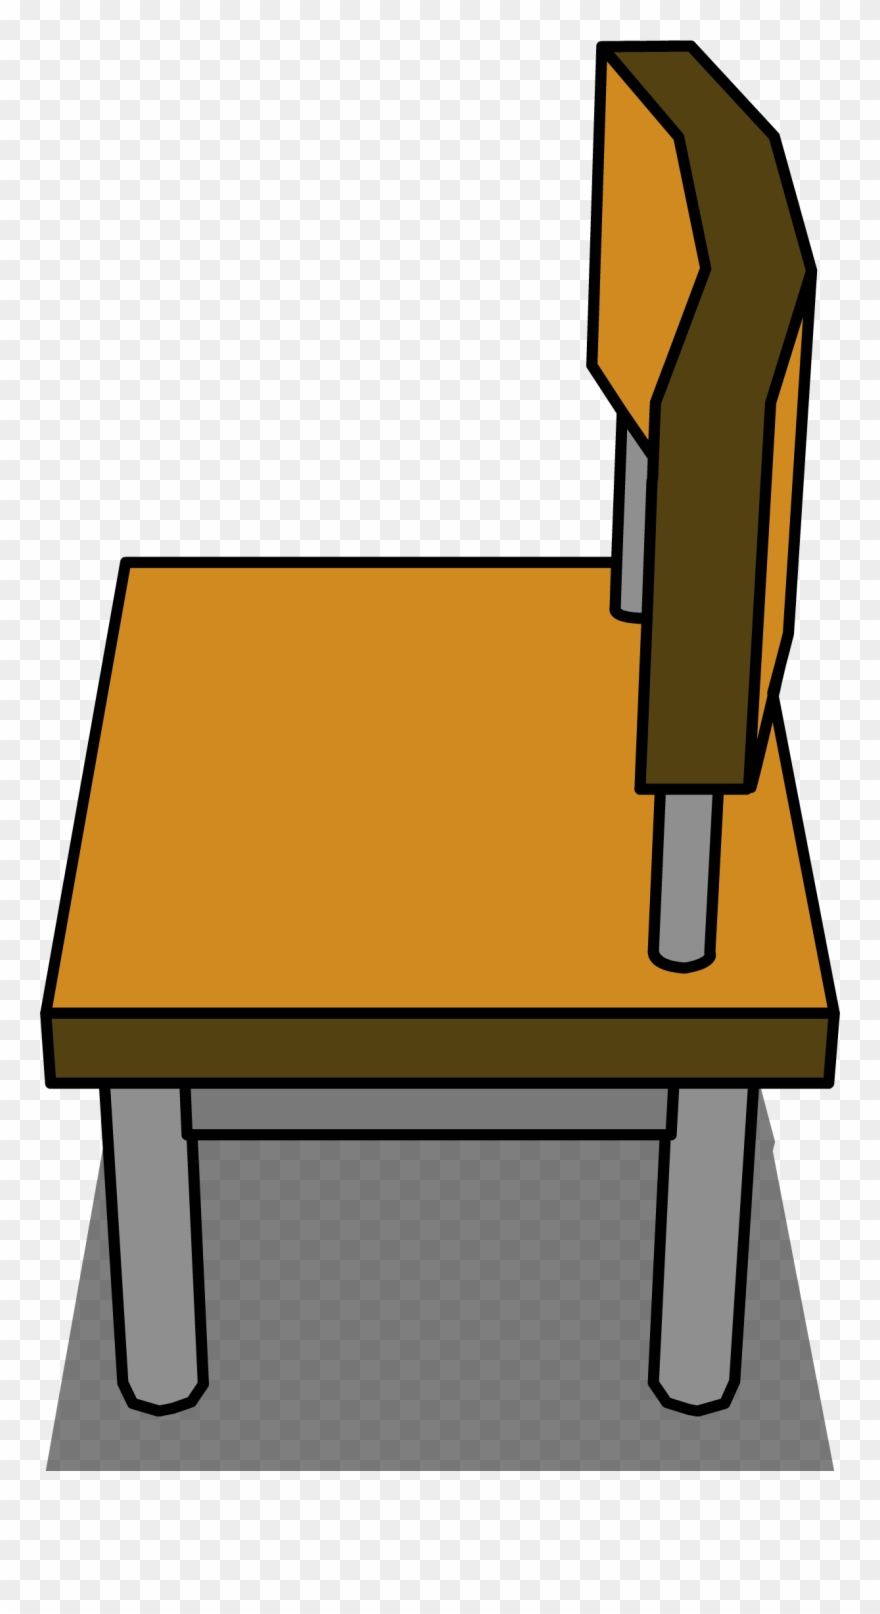 medium resolution of igloo clipart history classroom chair png download